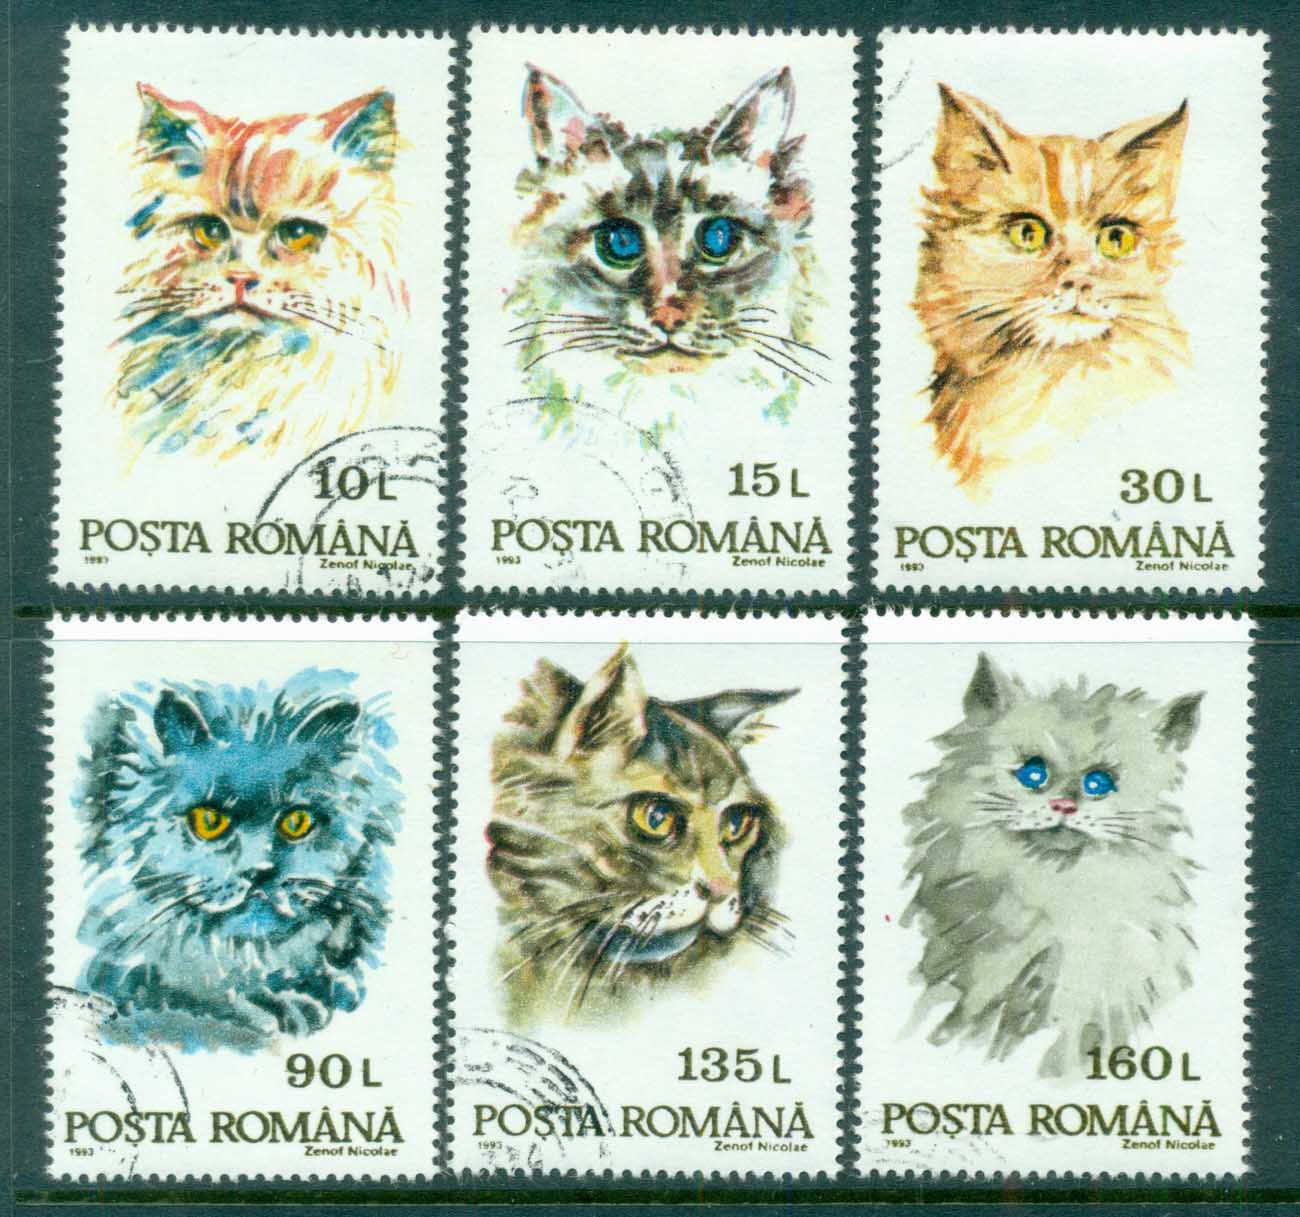 Romania 1993 Cats CTO